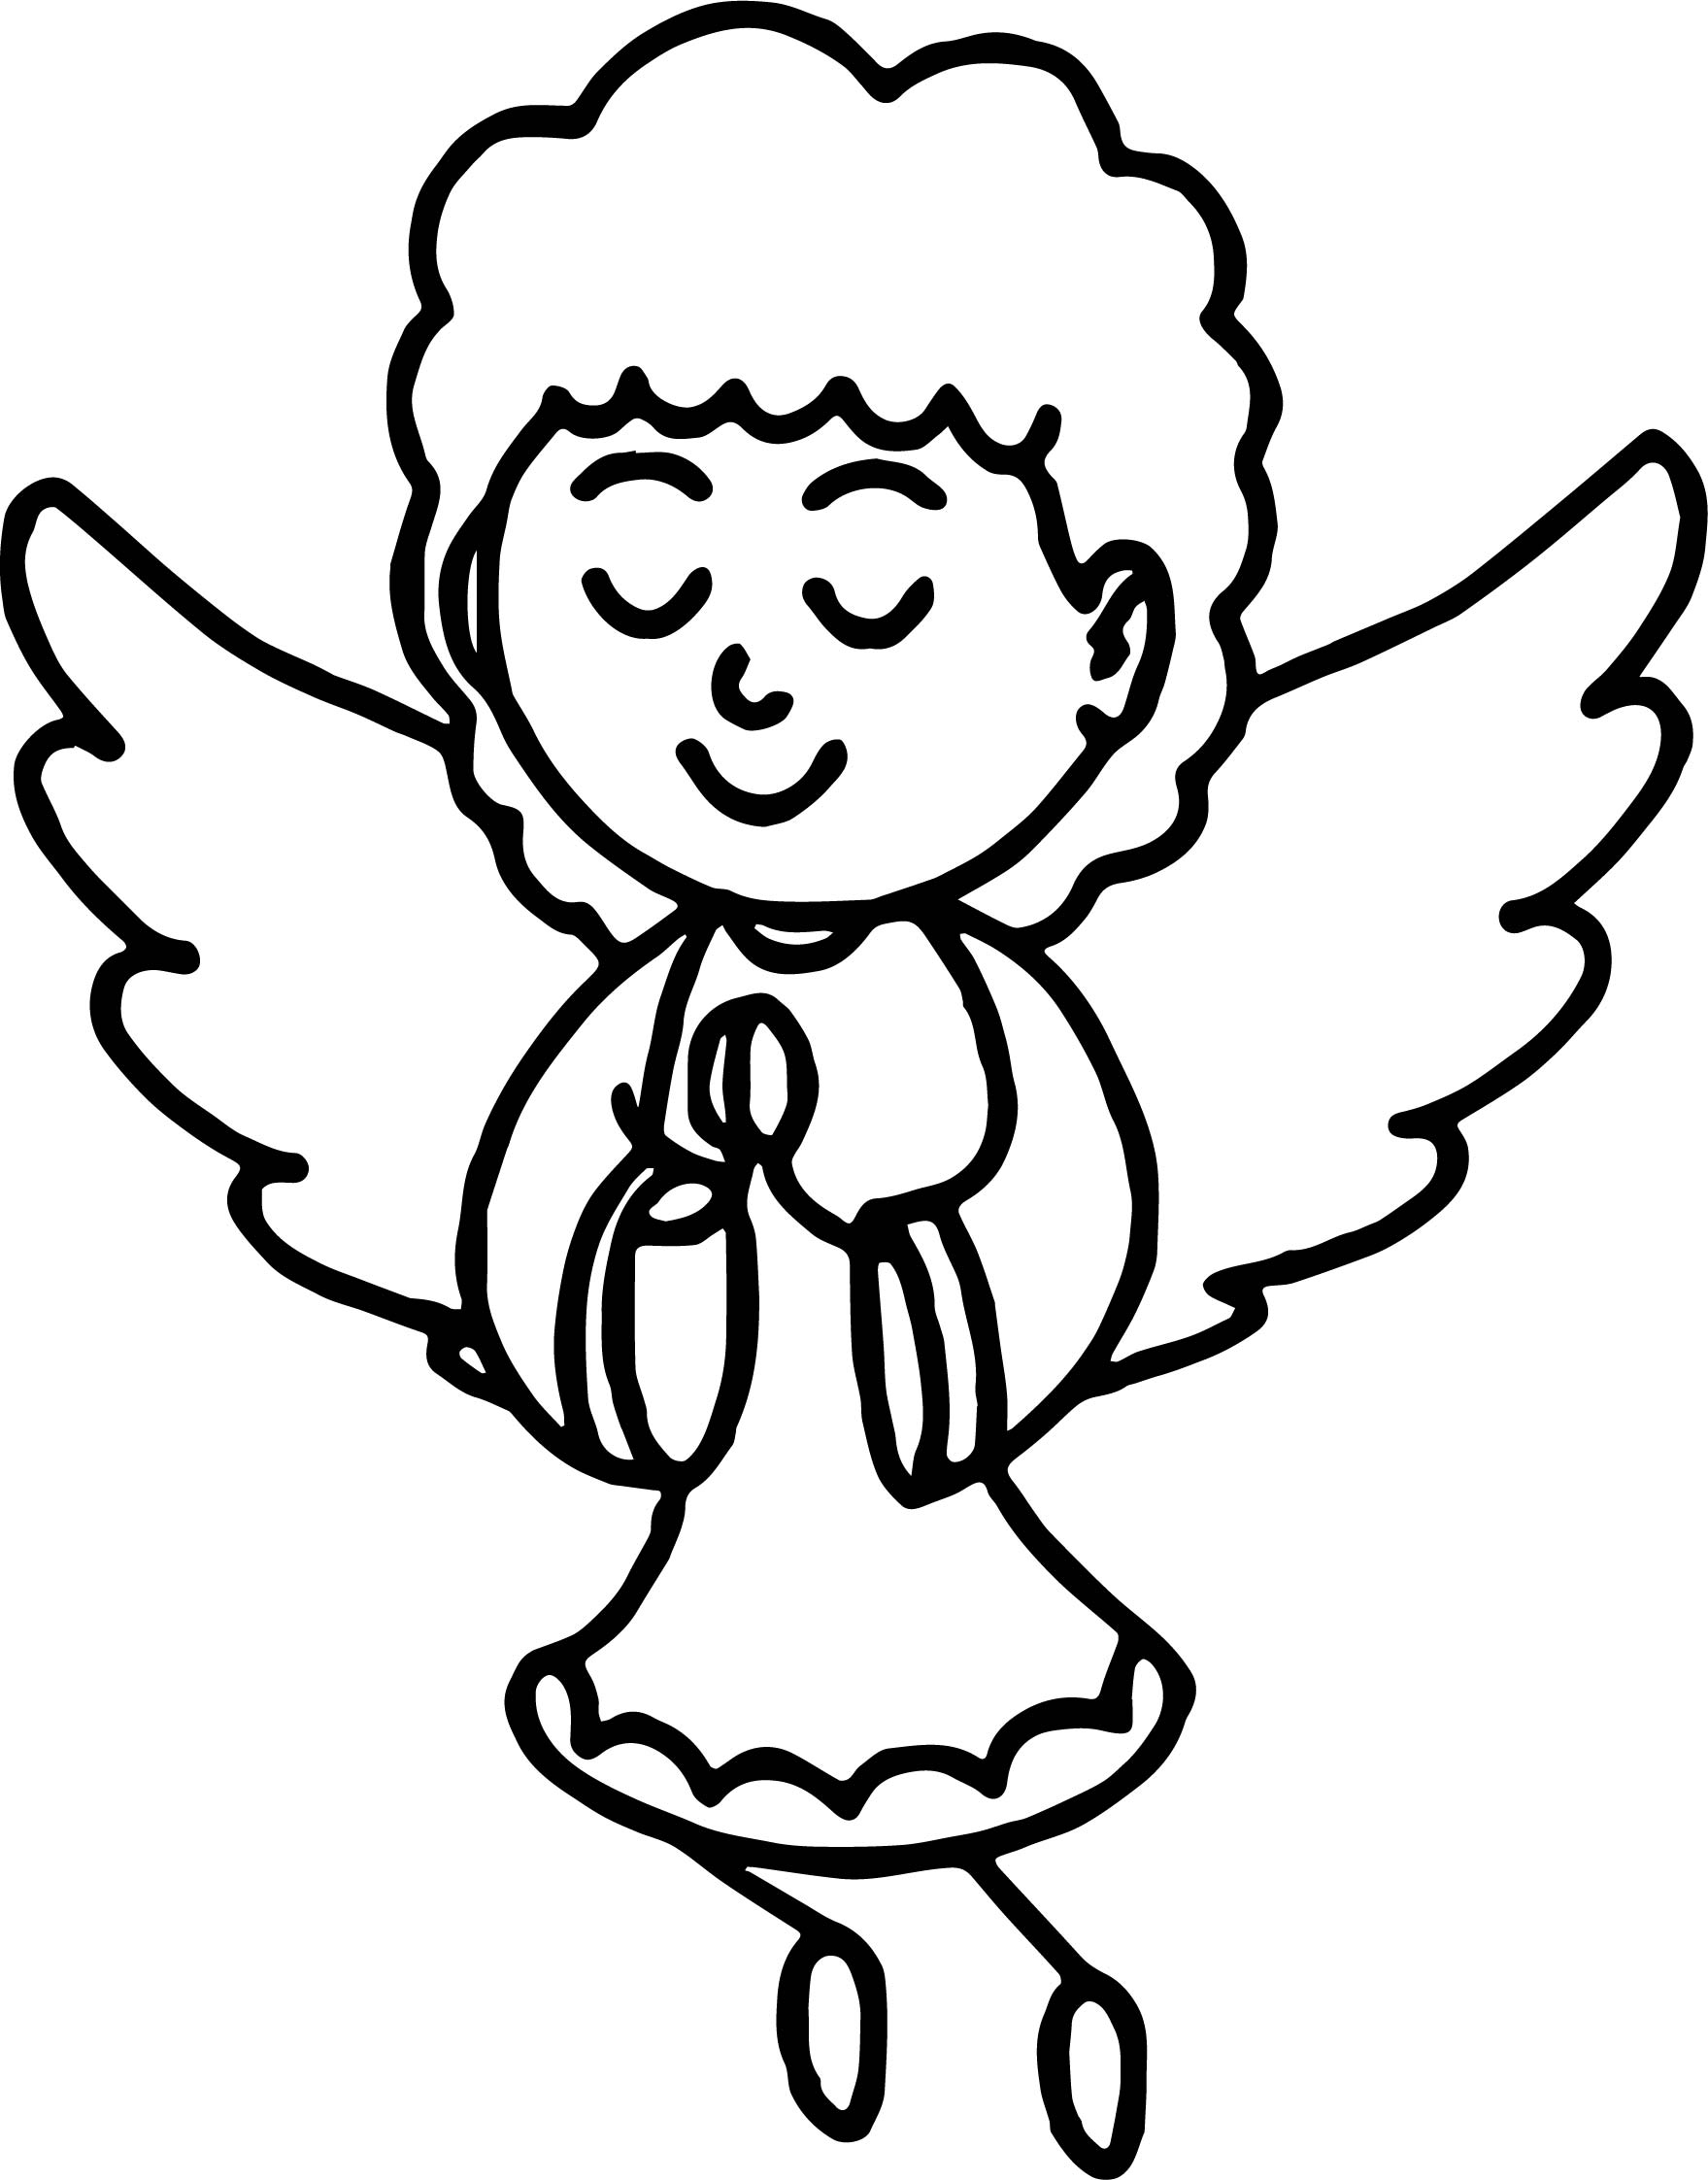 Praying Angel In Dress Coloring Page